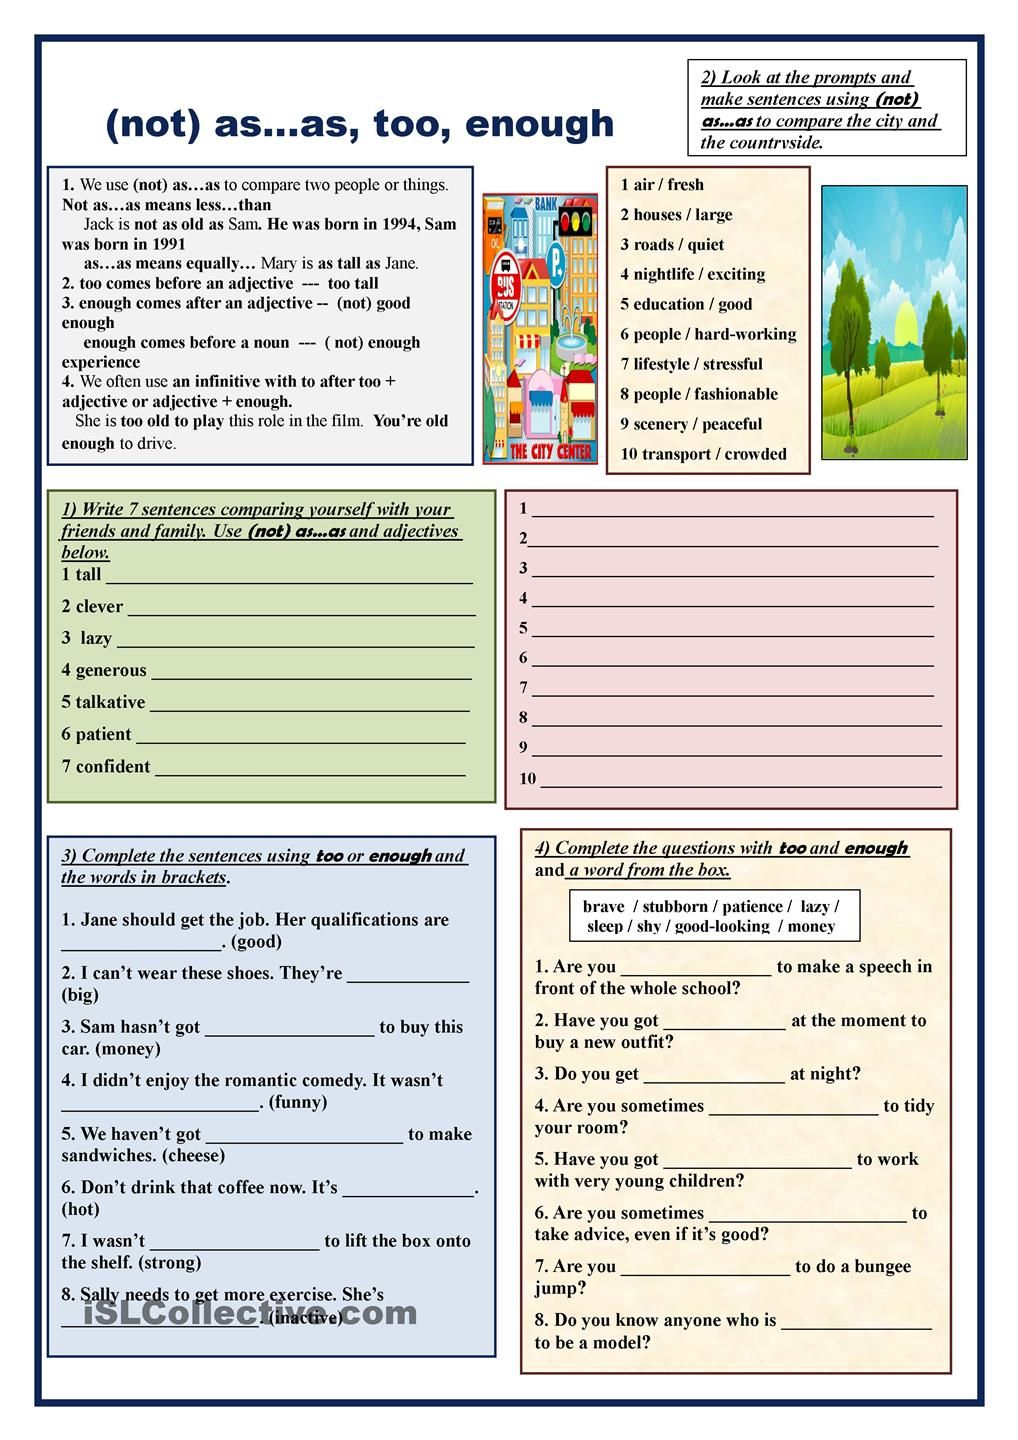 Comparisons Not As As Too Enough English Worksheets For Kids Grammar English Grammar Worksheets [ 1440 x 1018 Pixel ]